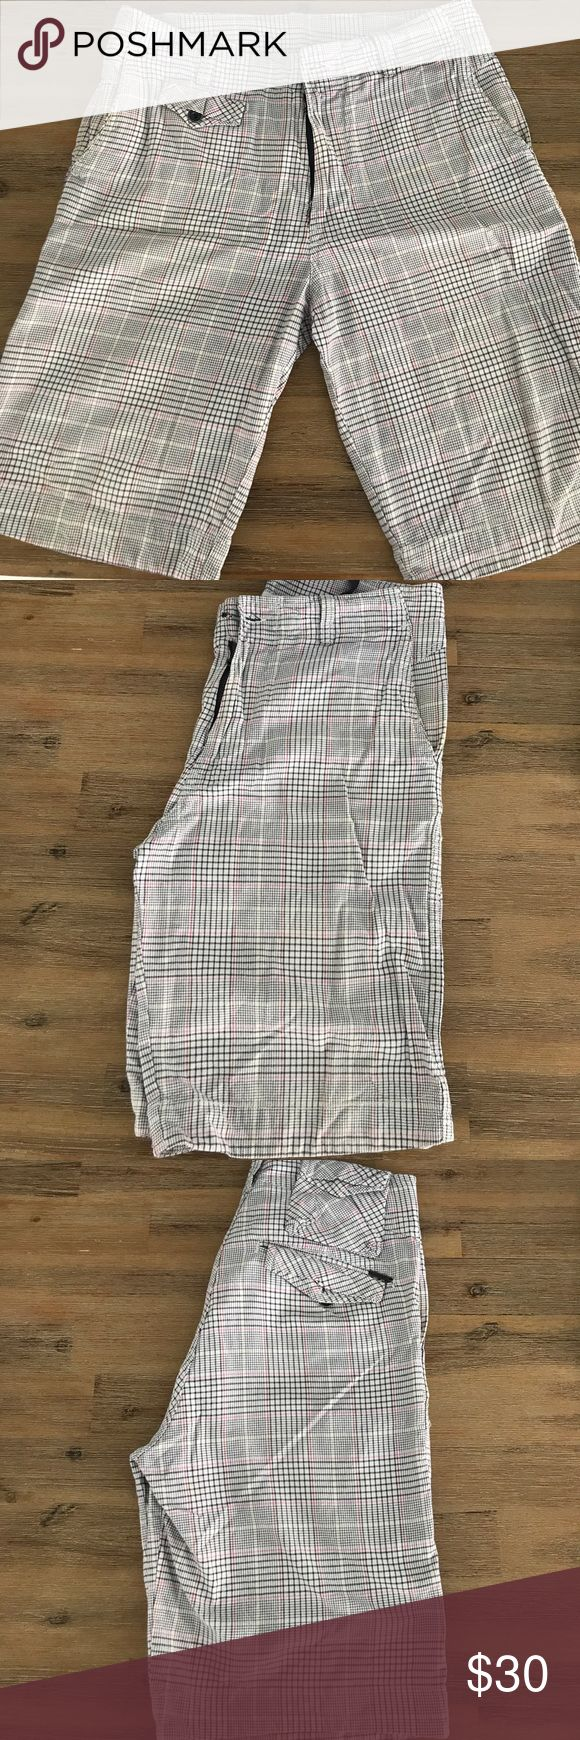 Diesel plaid shorts size 32 Diesel plaid shorts size 32. *missing button at waist Diesel Shorts Flat Front